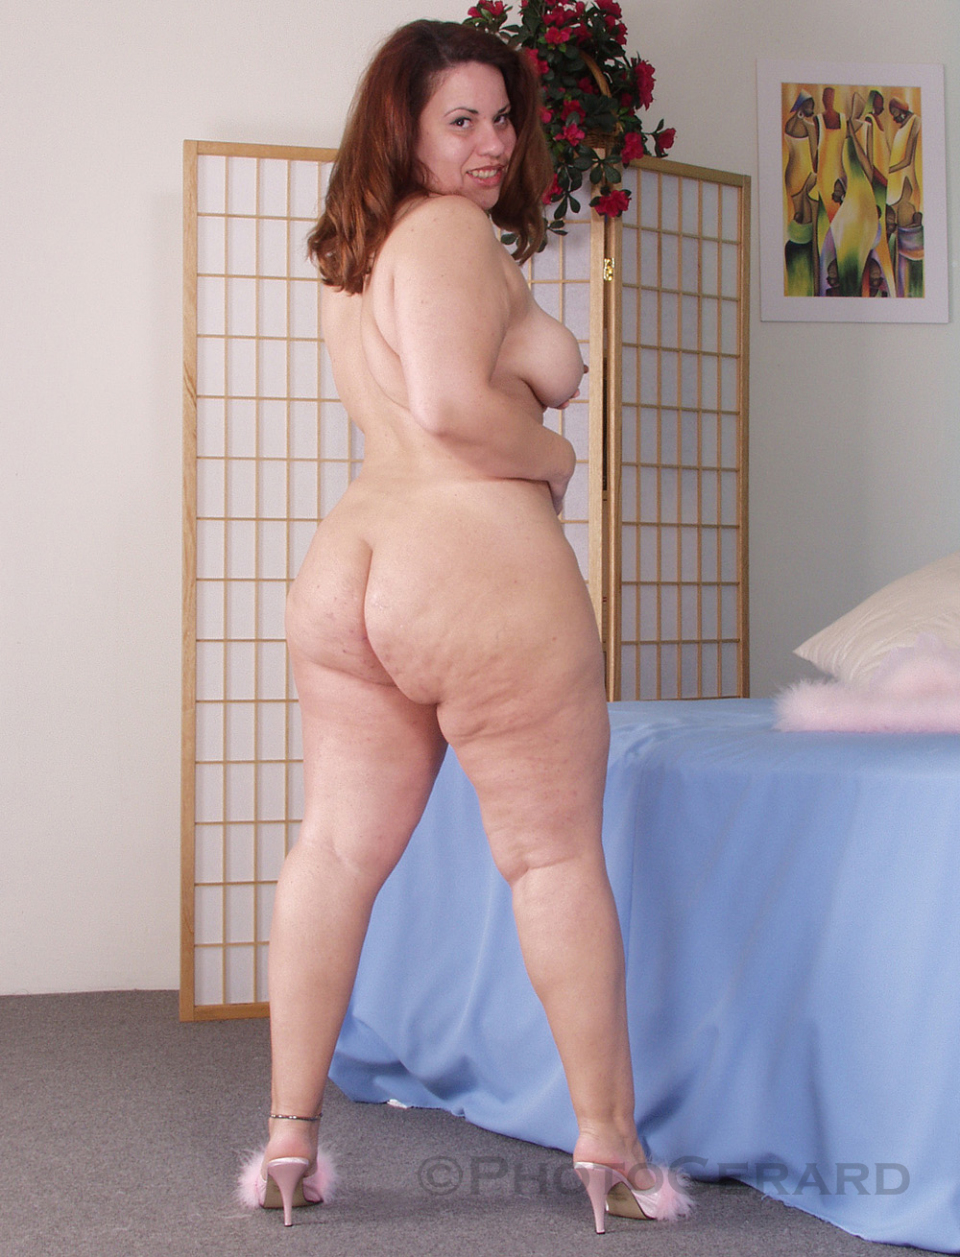 Naked Www.Plus size girl